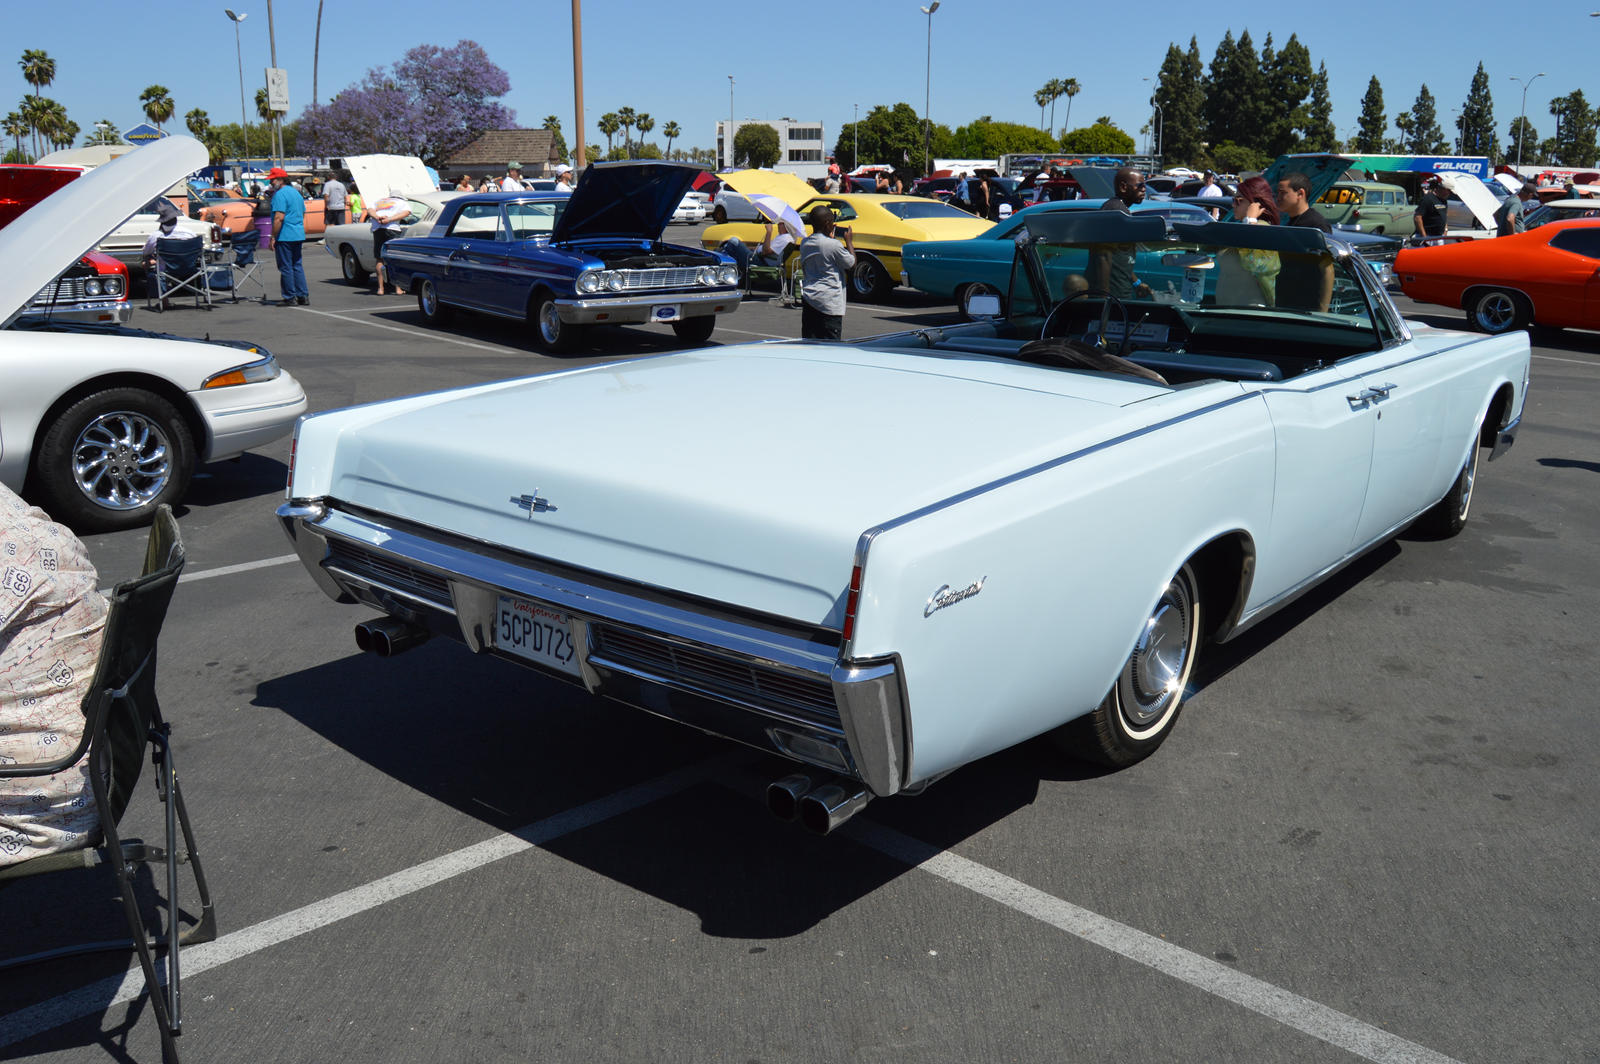 1966 lincoln continental convertible iv by brooklyn47 on deviantart. Black Bedroom Furniture Sets. Home Design Ideas